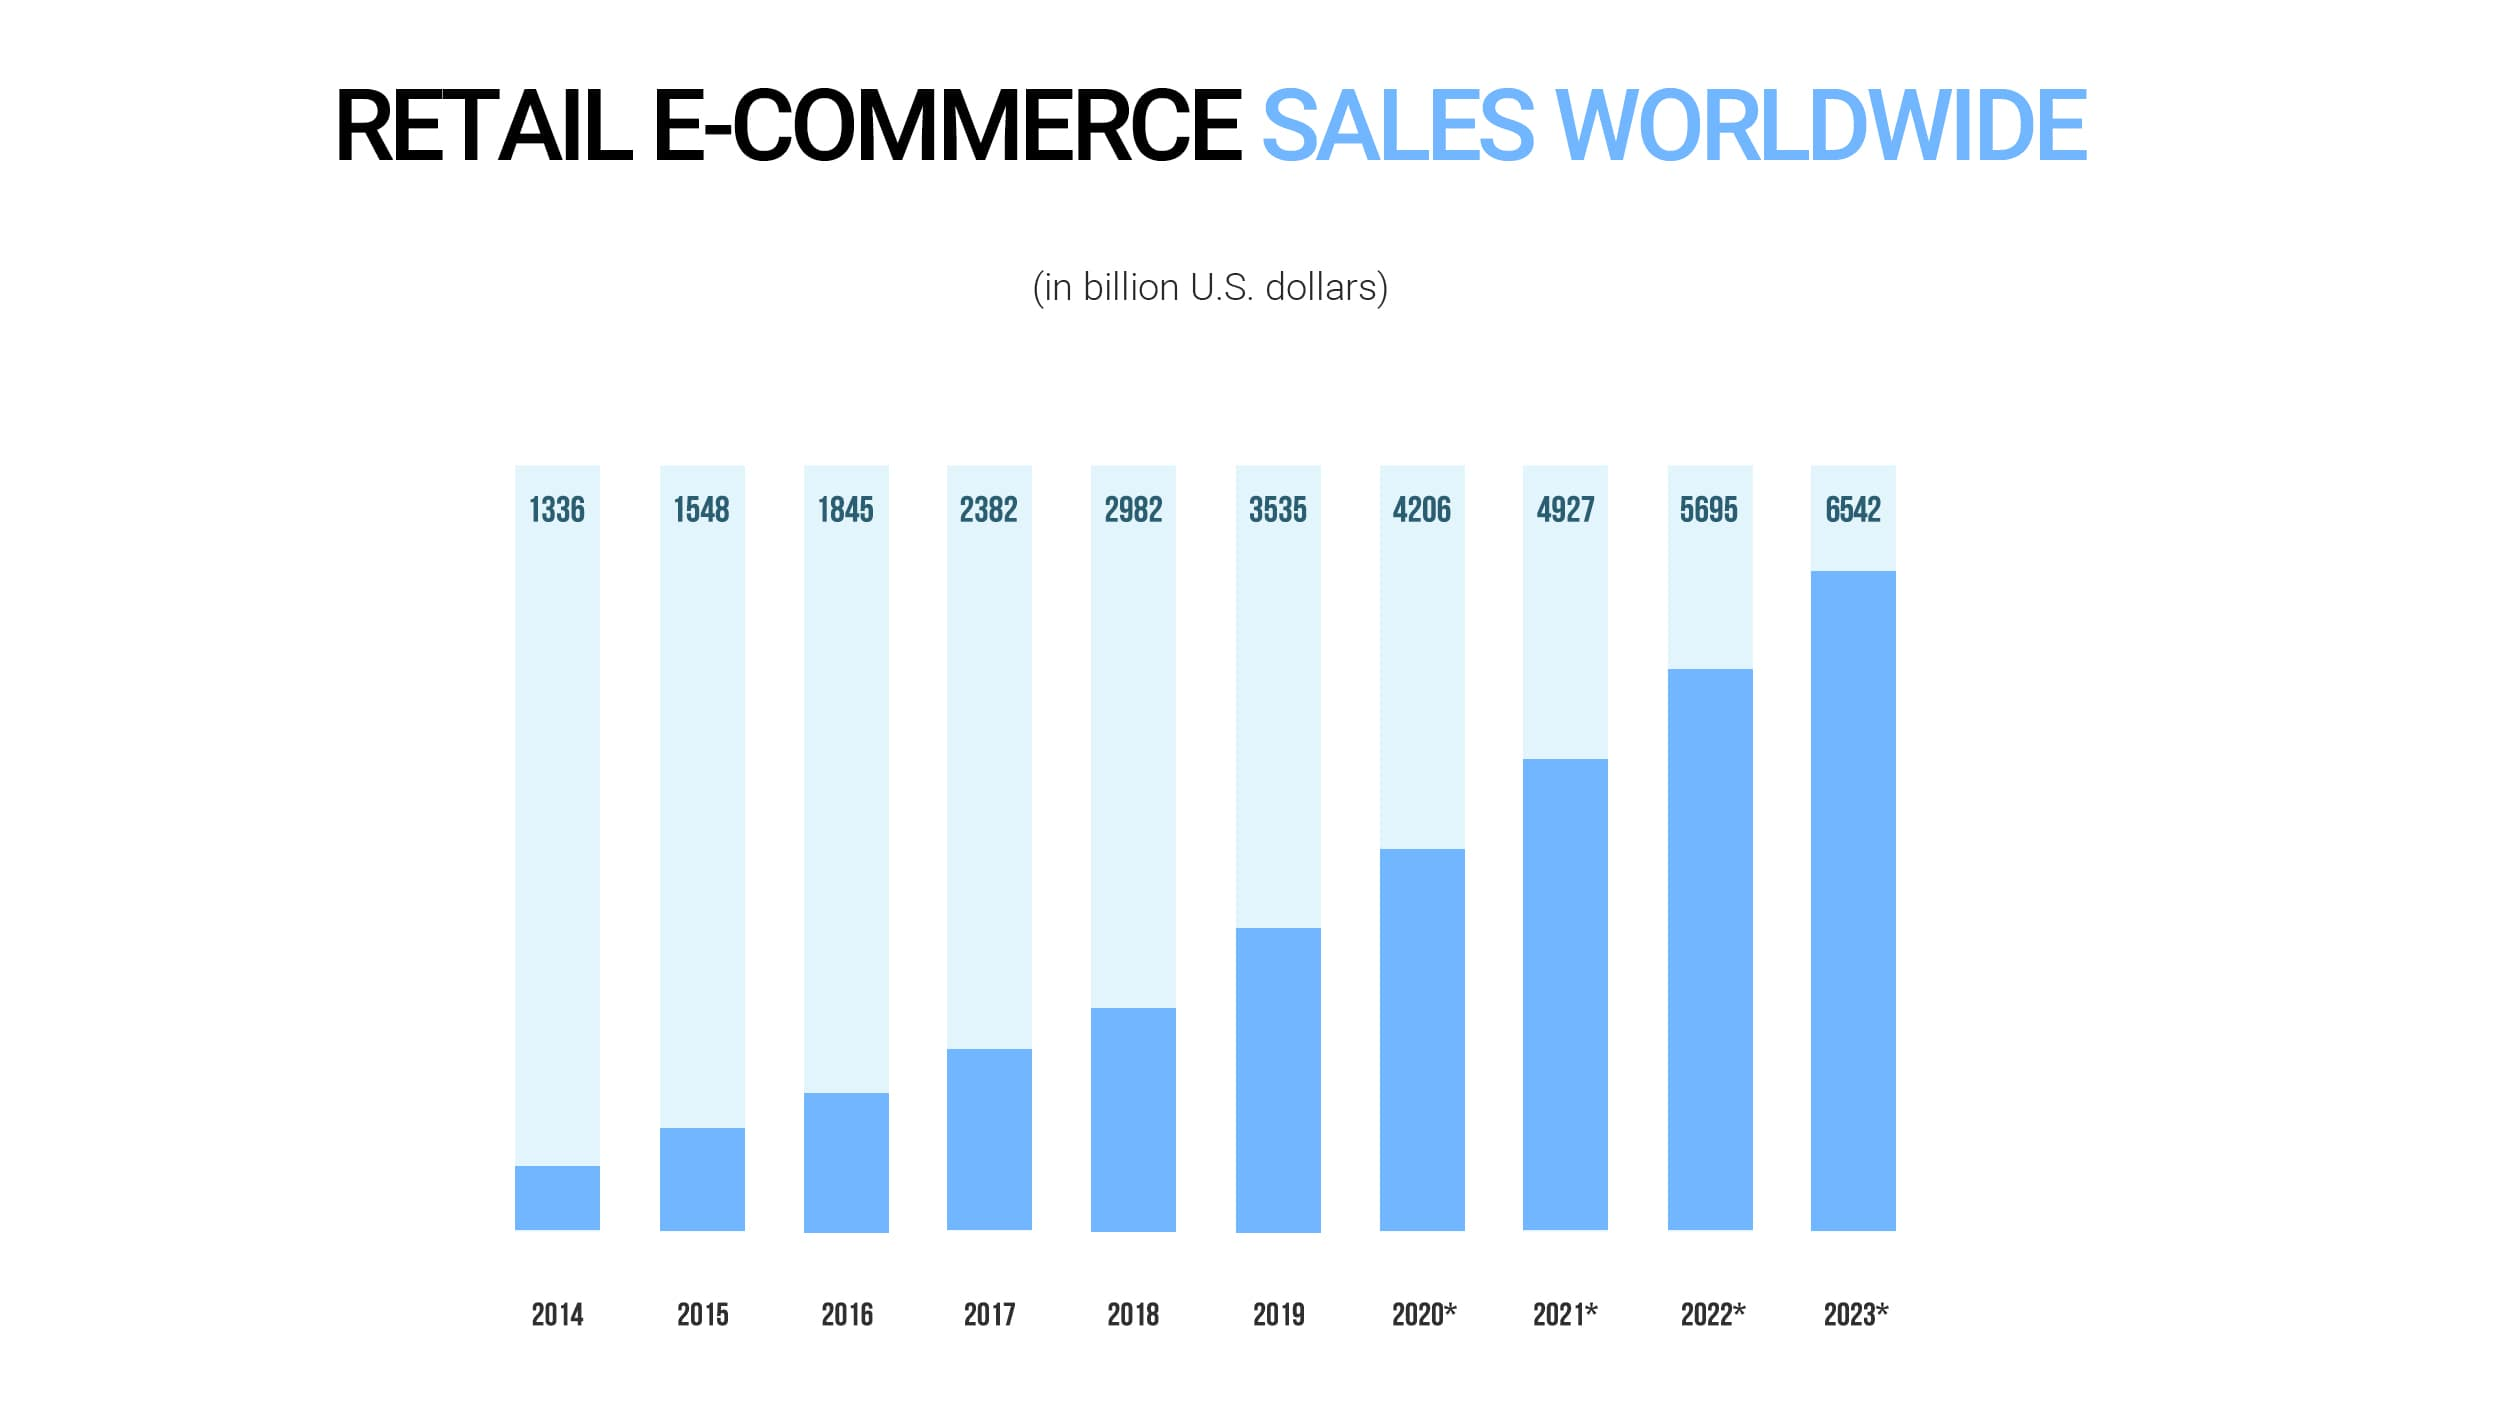 Retail e-commerce sales worldwide from 2014 to 2023